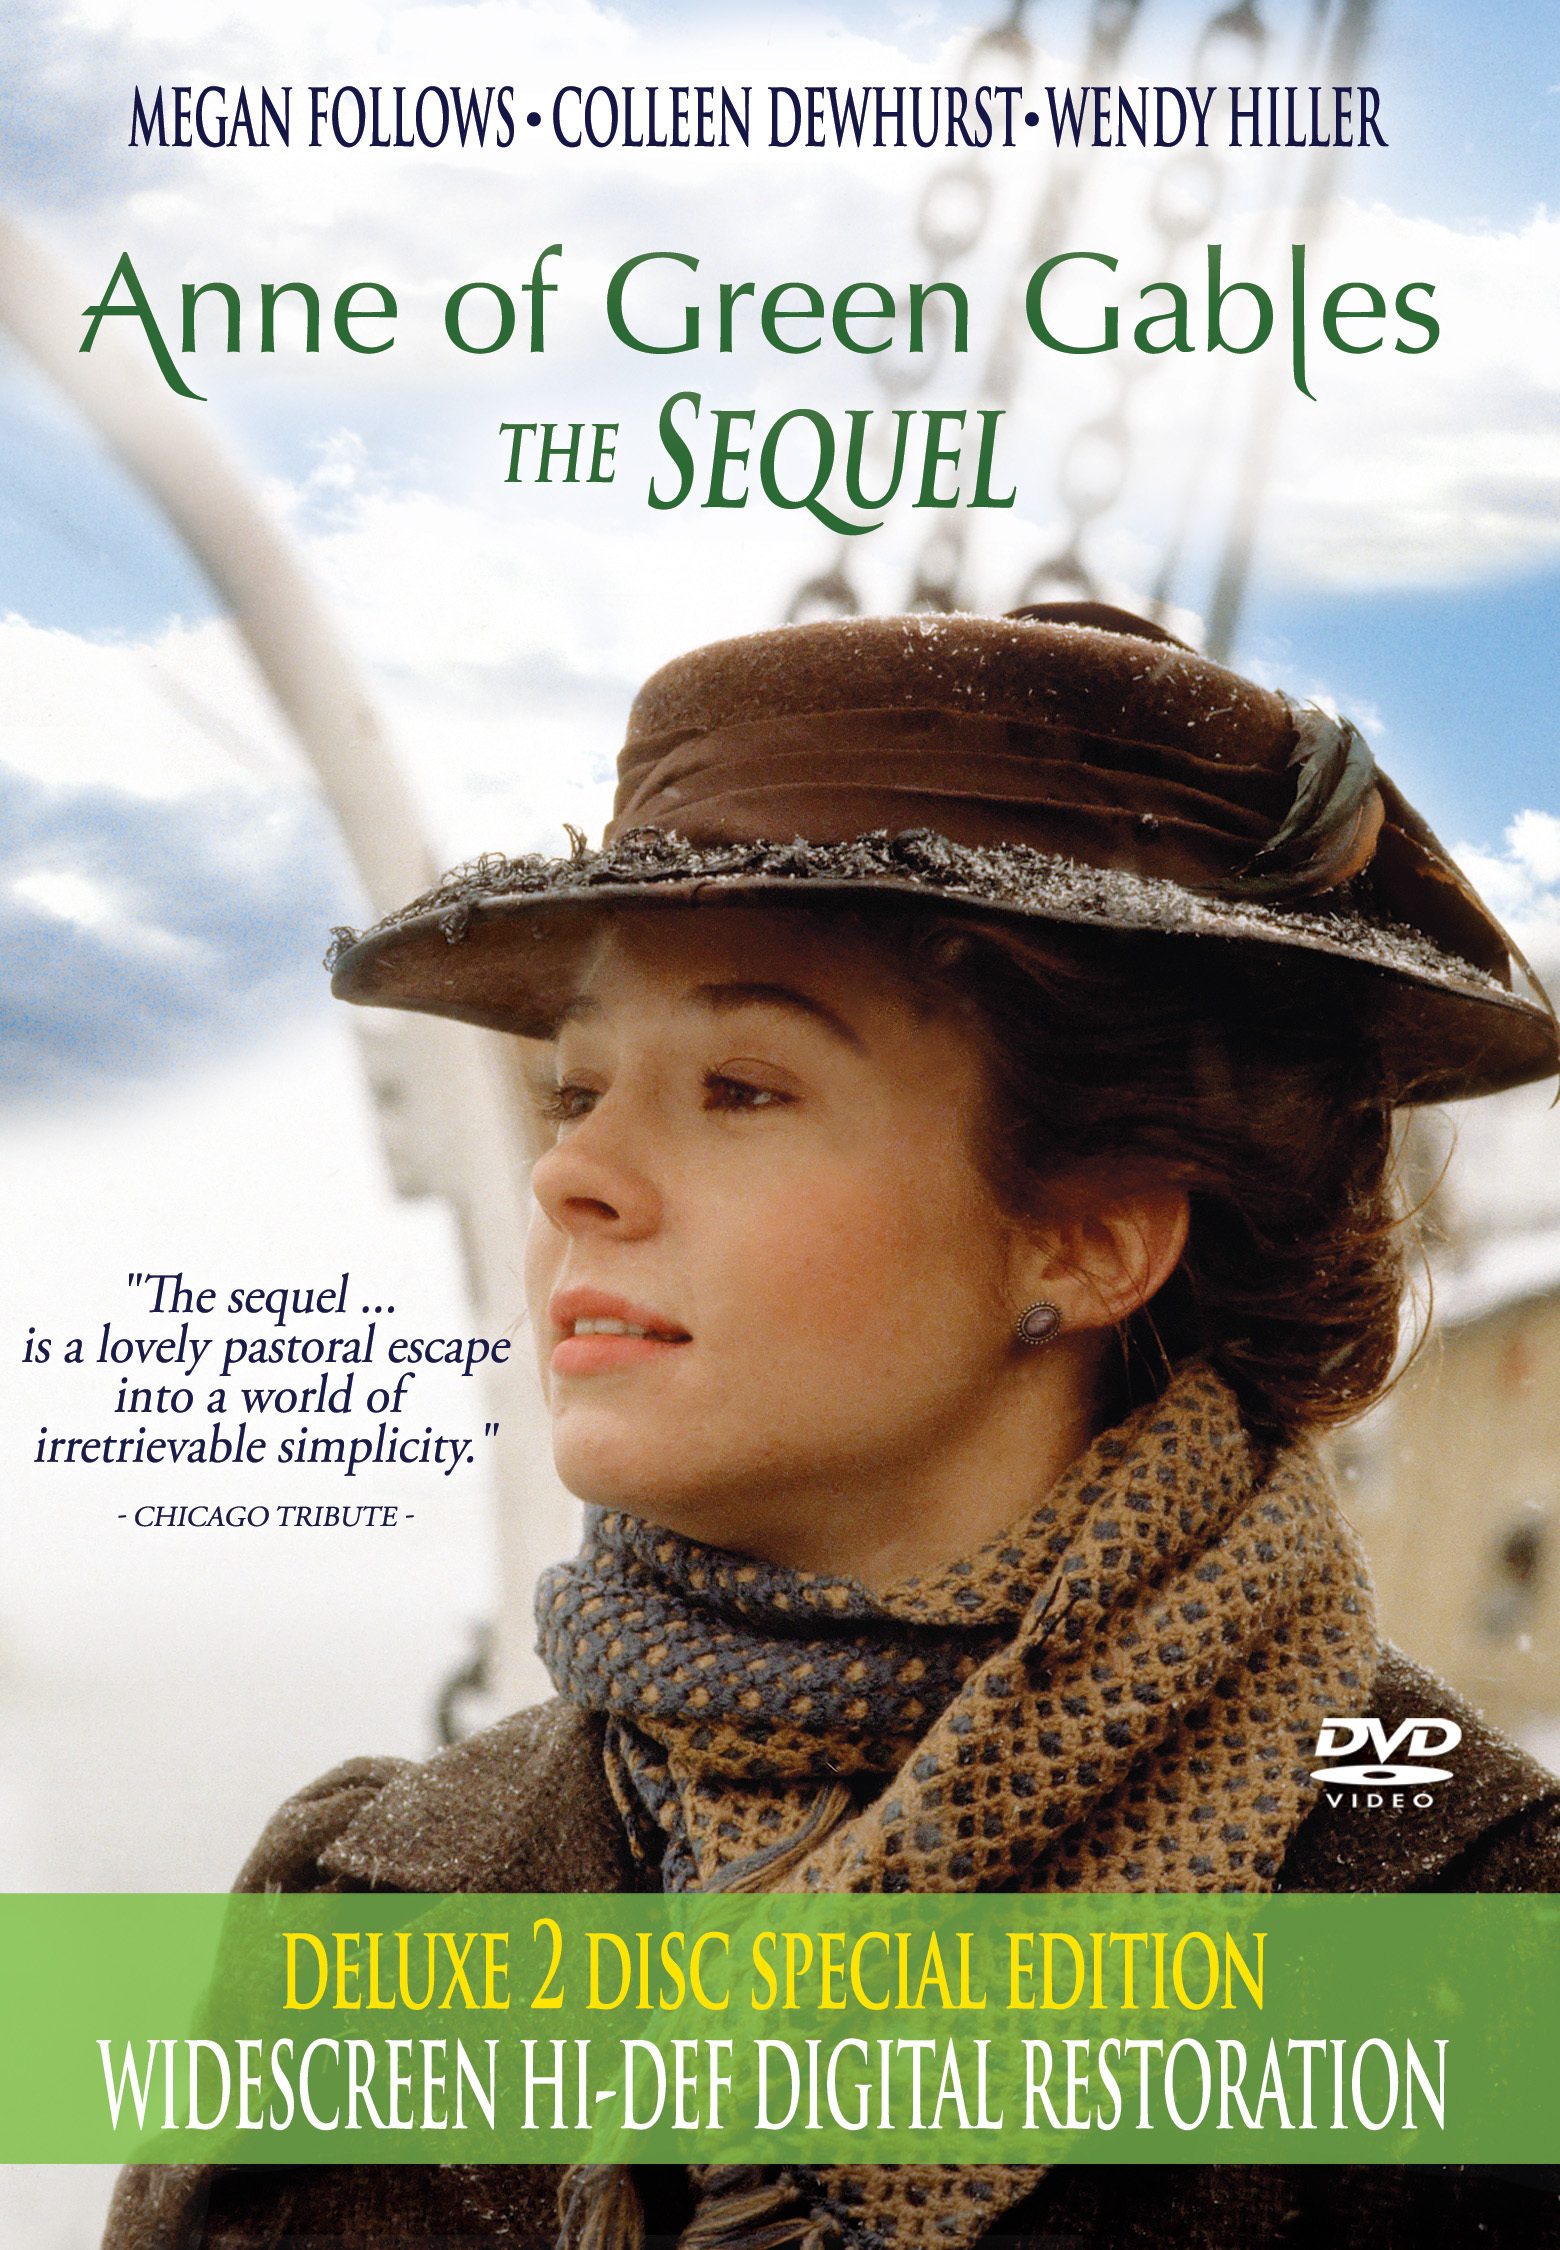 anne of green gables original film